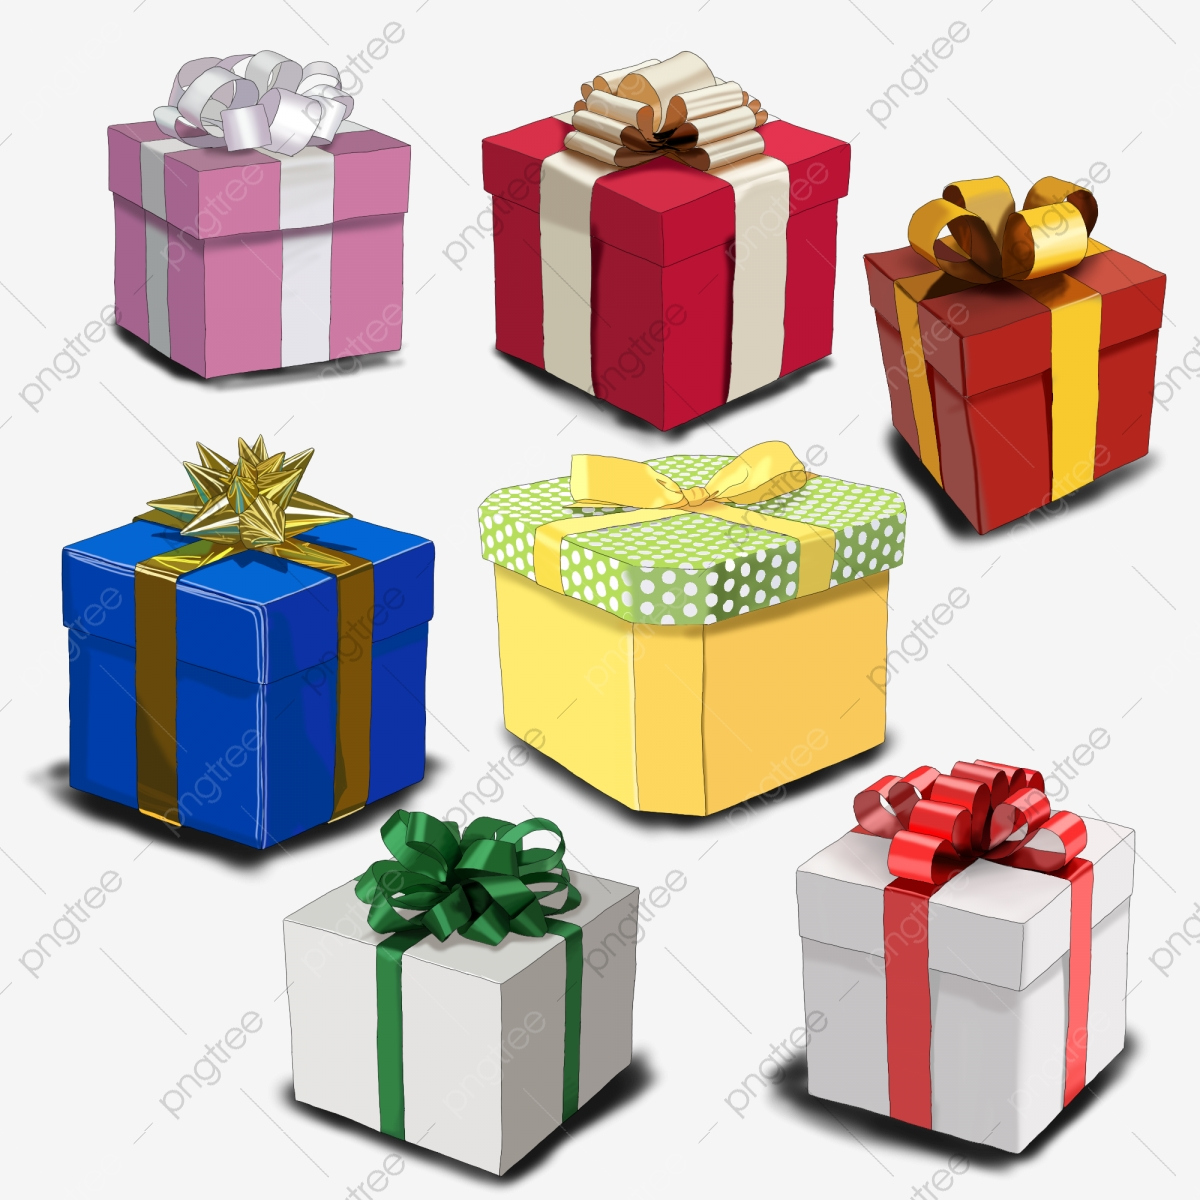 A of presents holiday. Gifts clipart bunch